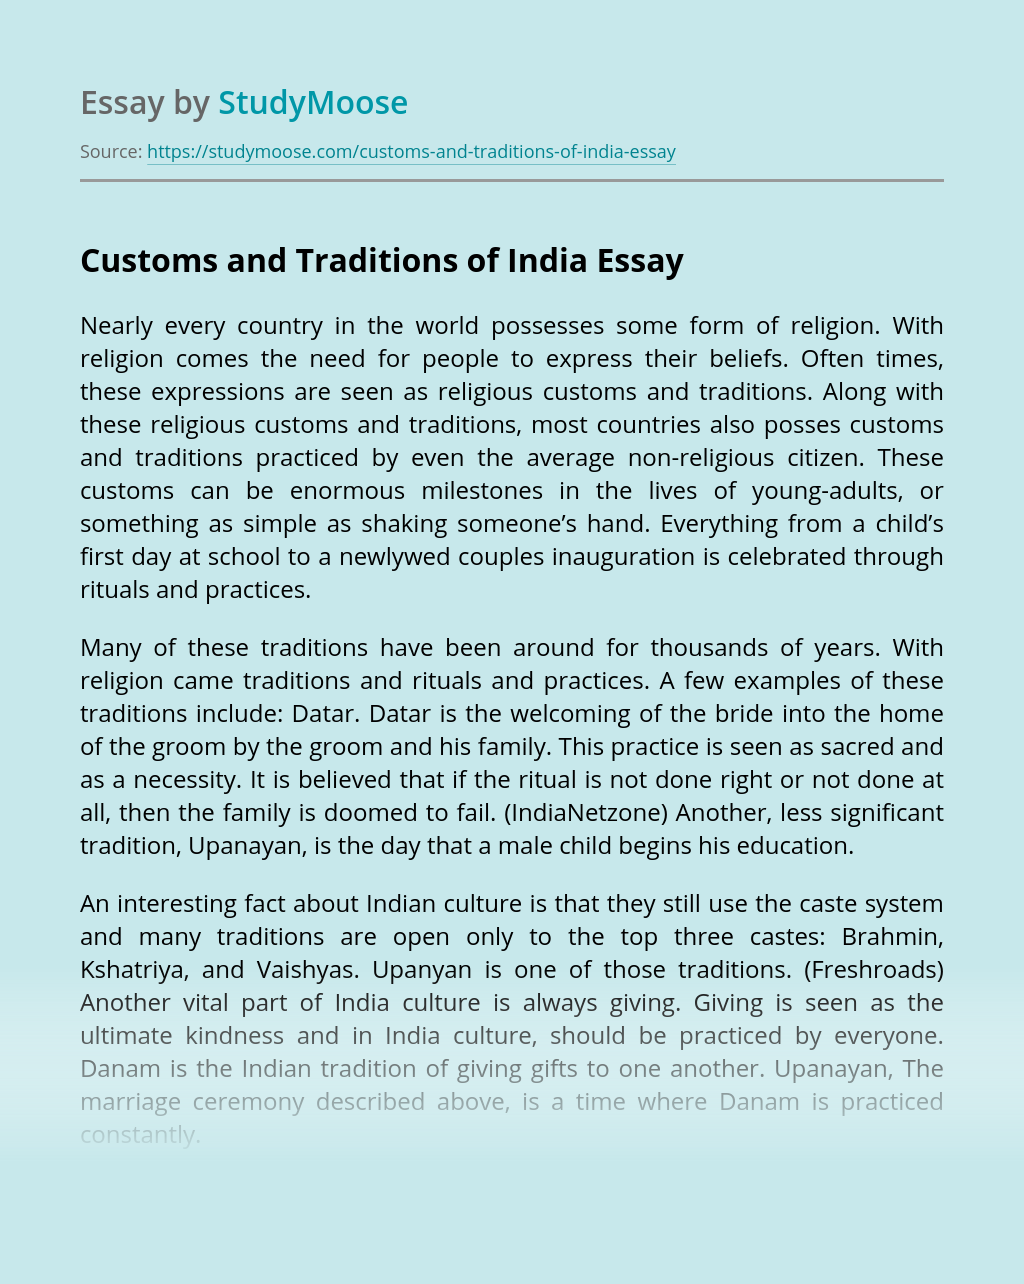 Customs and Traditions of India